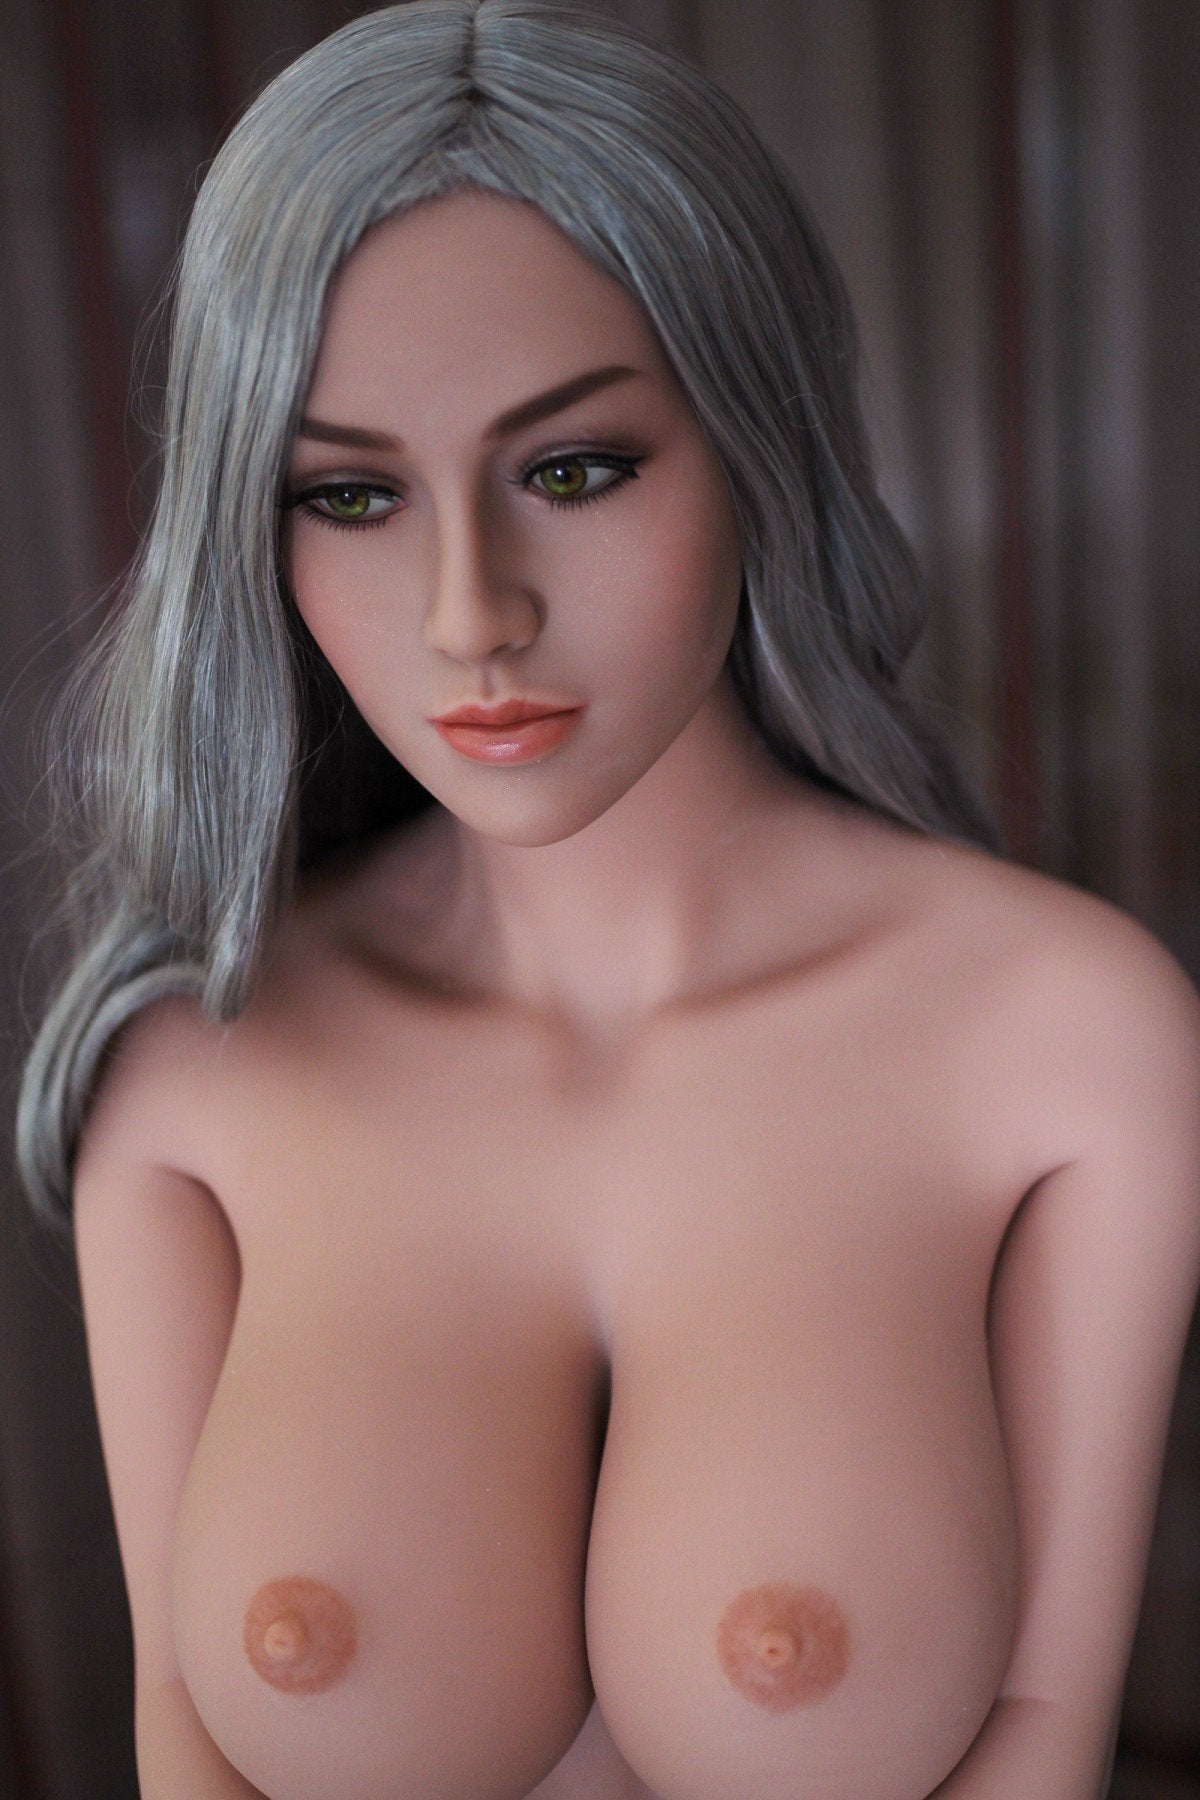 niagara 168cm blonde big boobs athletic skinny tpe wm sex doll(5)